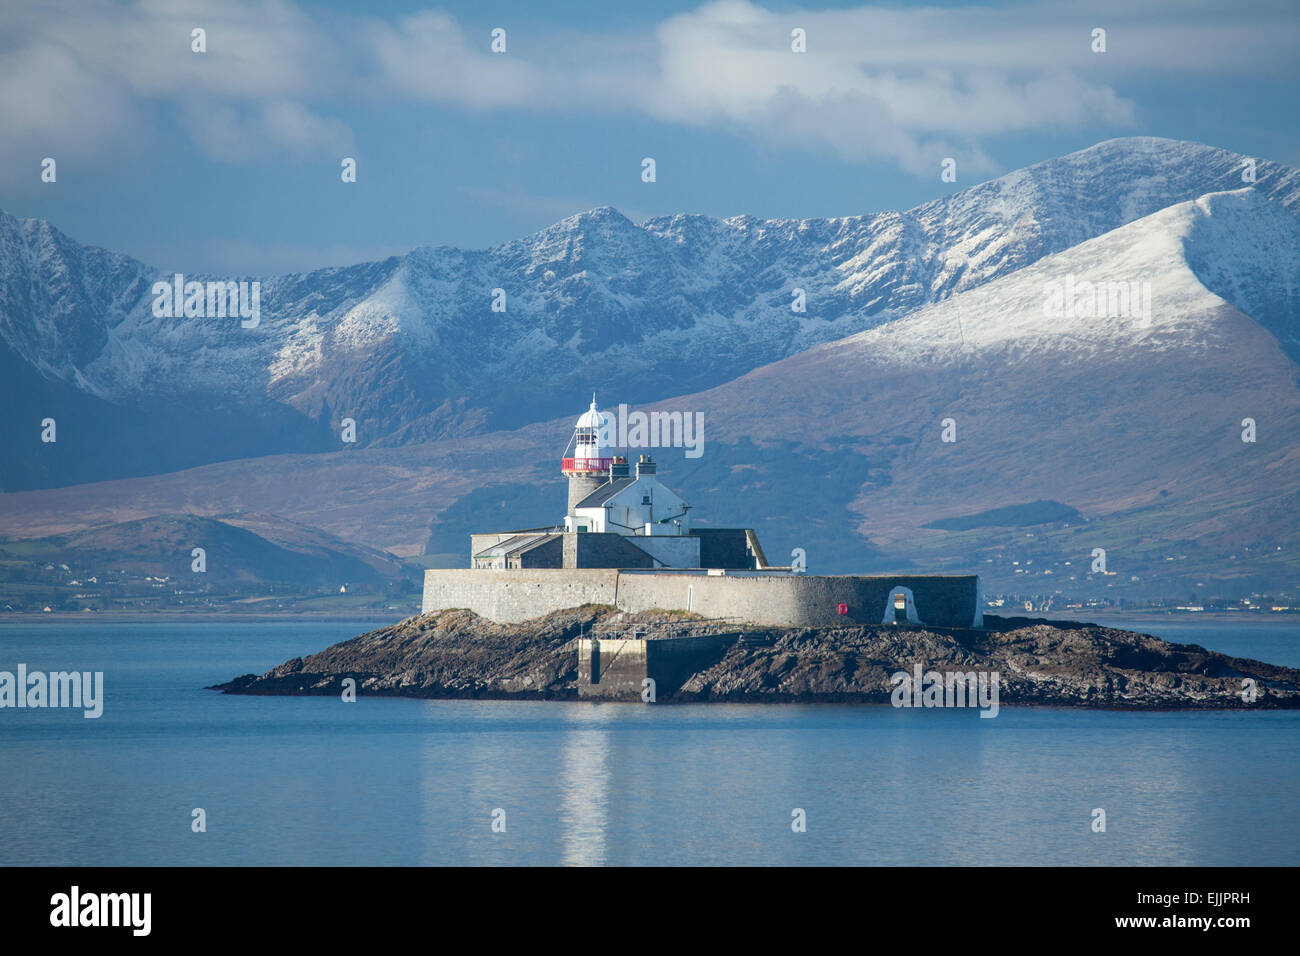 Fenit Island Lighthouse und die Brandon massiv, Tralee Bay, der Halbinsel Dingle in der Grafschaft Kerry, Irland. Stockbild